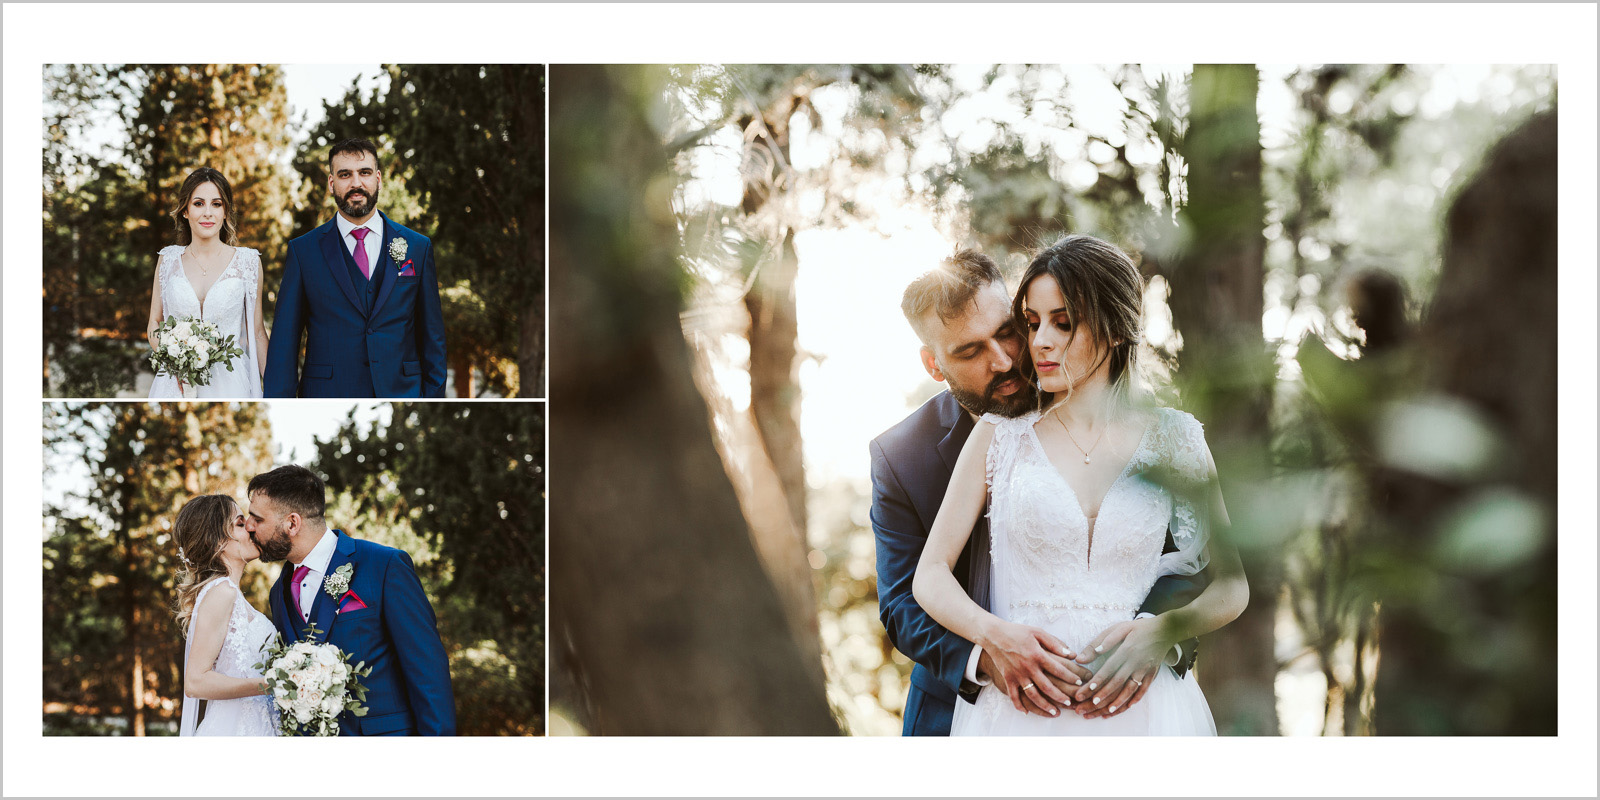 George & Valia Wedding Album_19